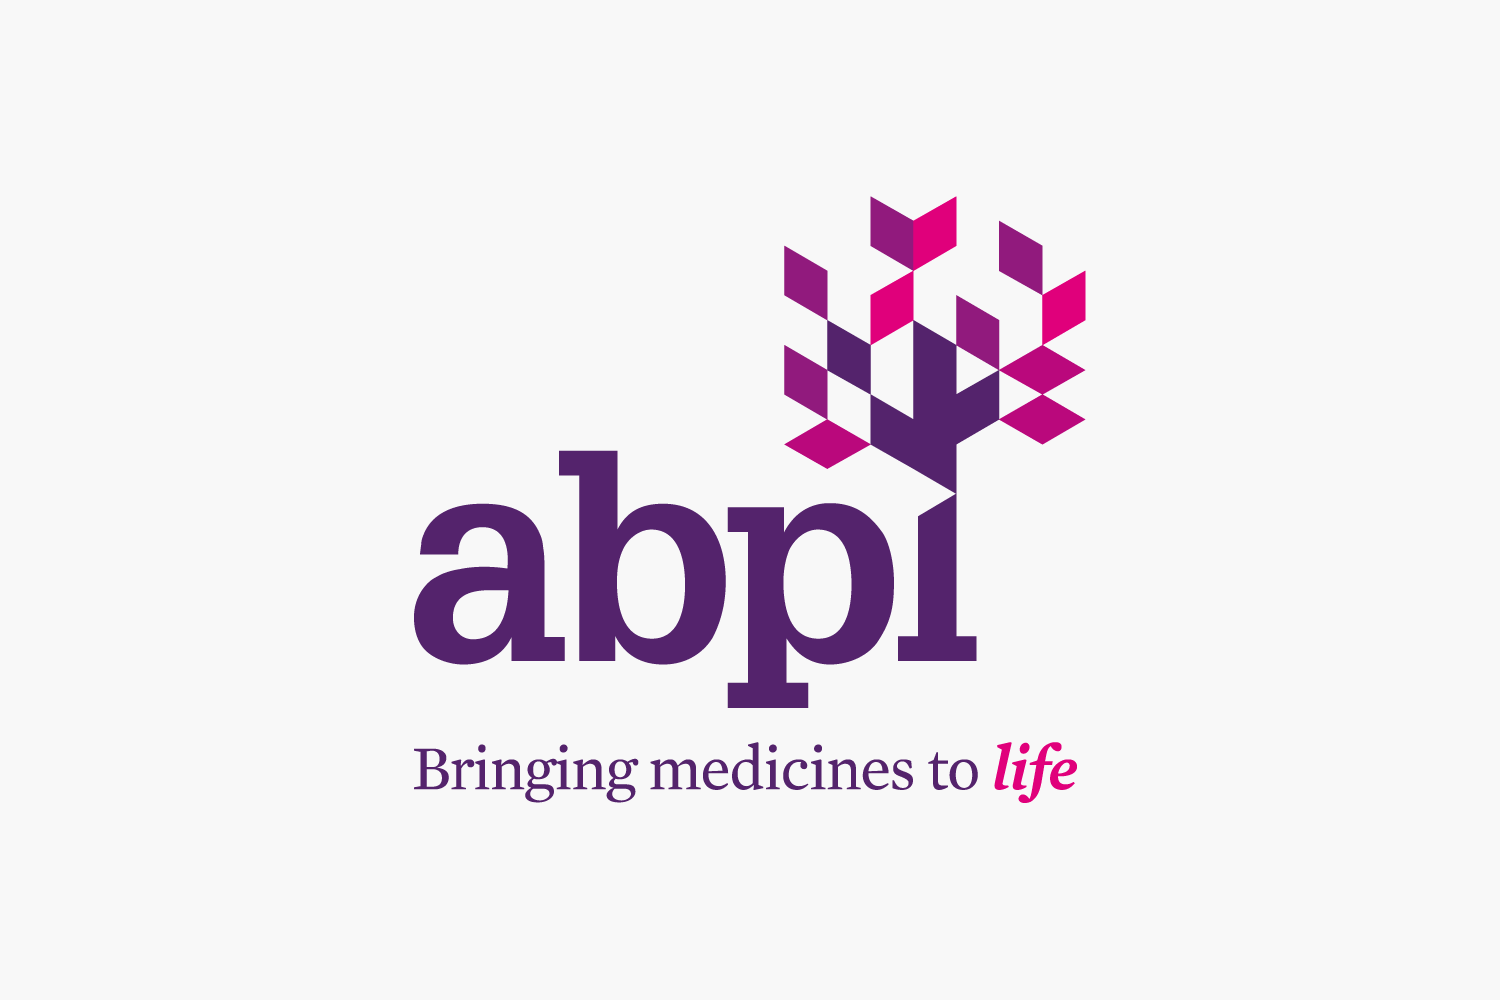 ABPI - We developed the strategy for repositioning the brand of the Association of the British Pharmaceutical Industry, transforming their 40 year old image to reflect how the industry is today.View project